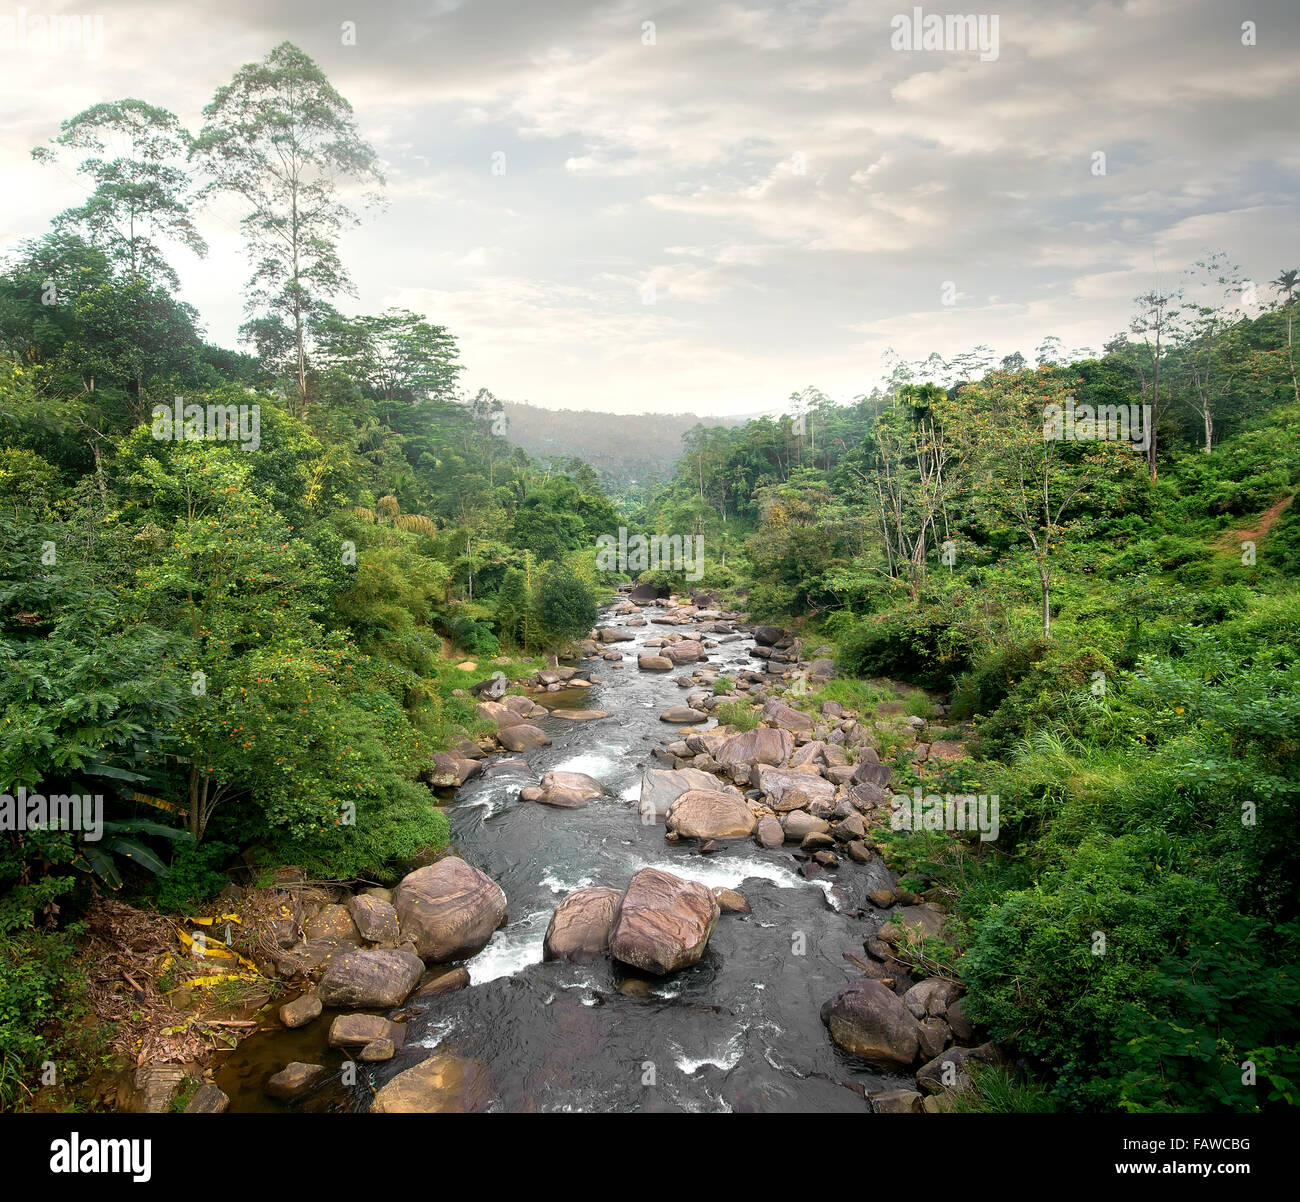 Cloudy weather and river in tropical forest - Stock Image